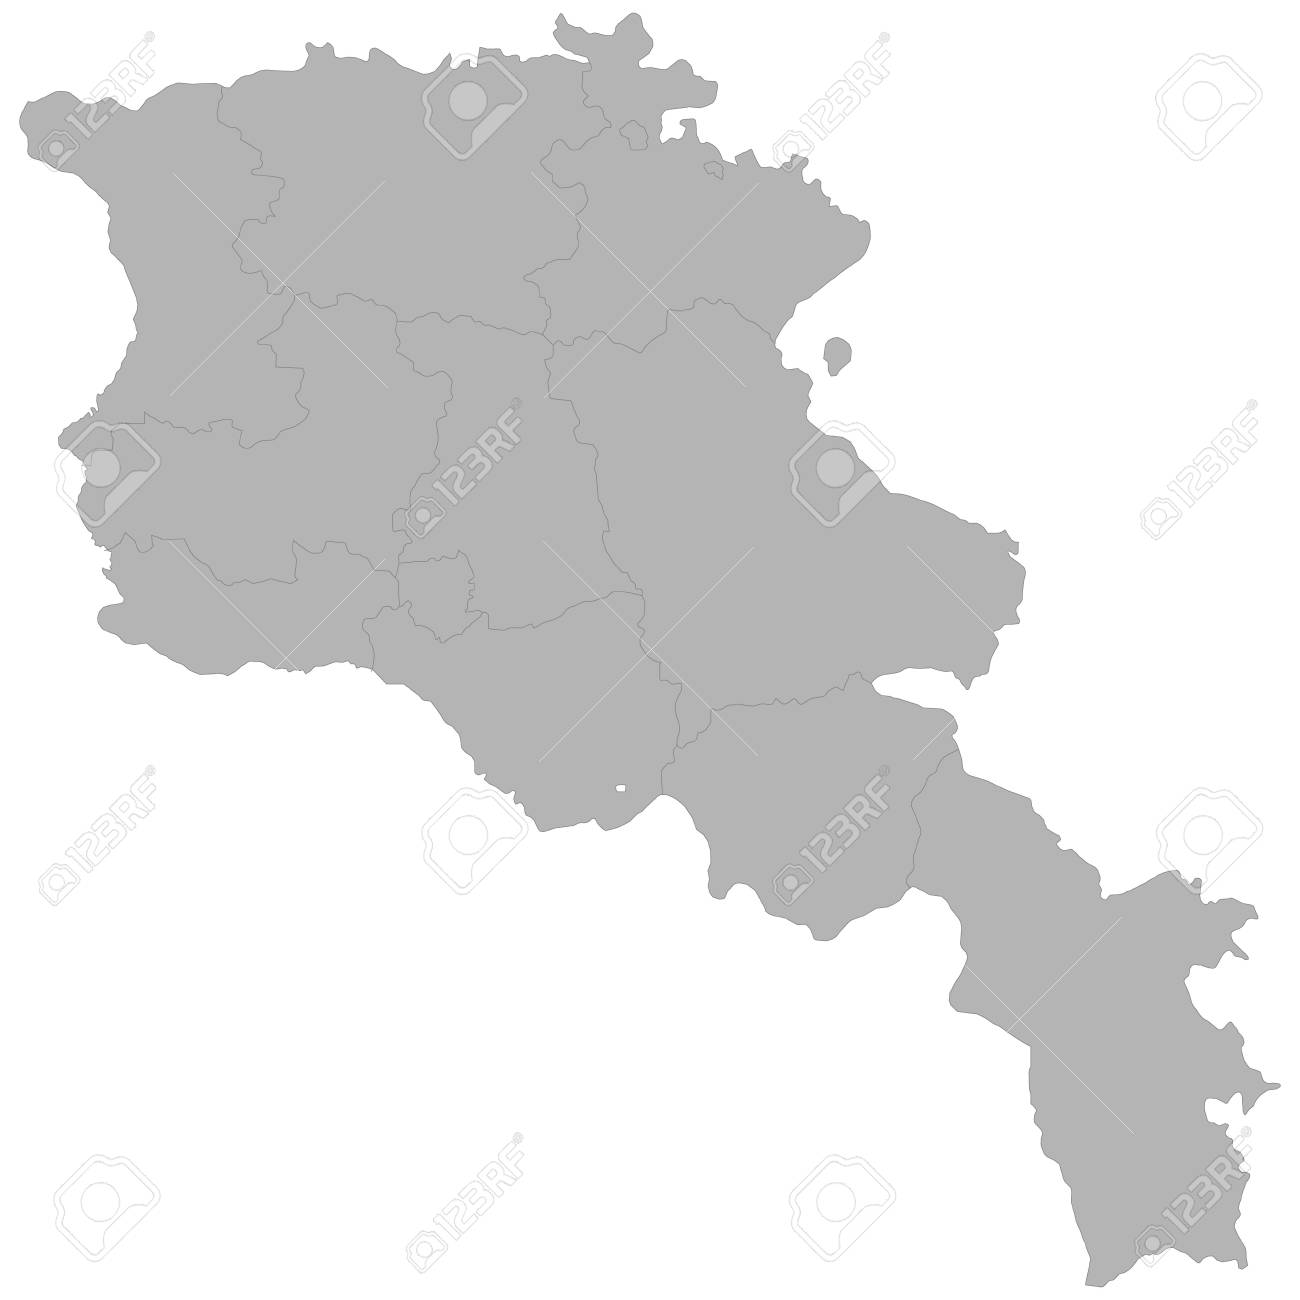 High quality map of Armenia with borders of the regions on white background